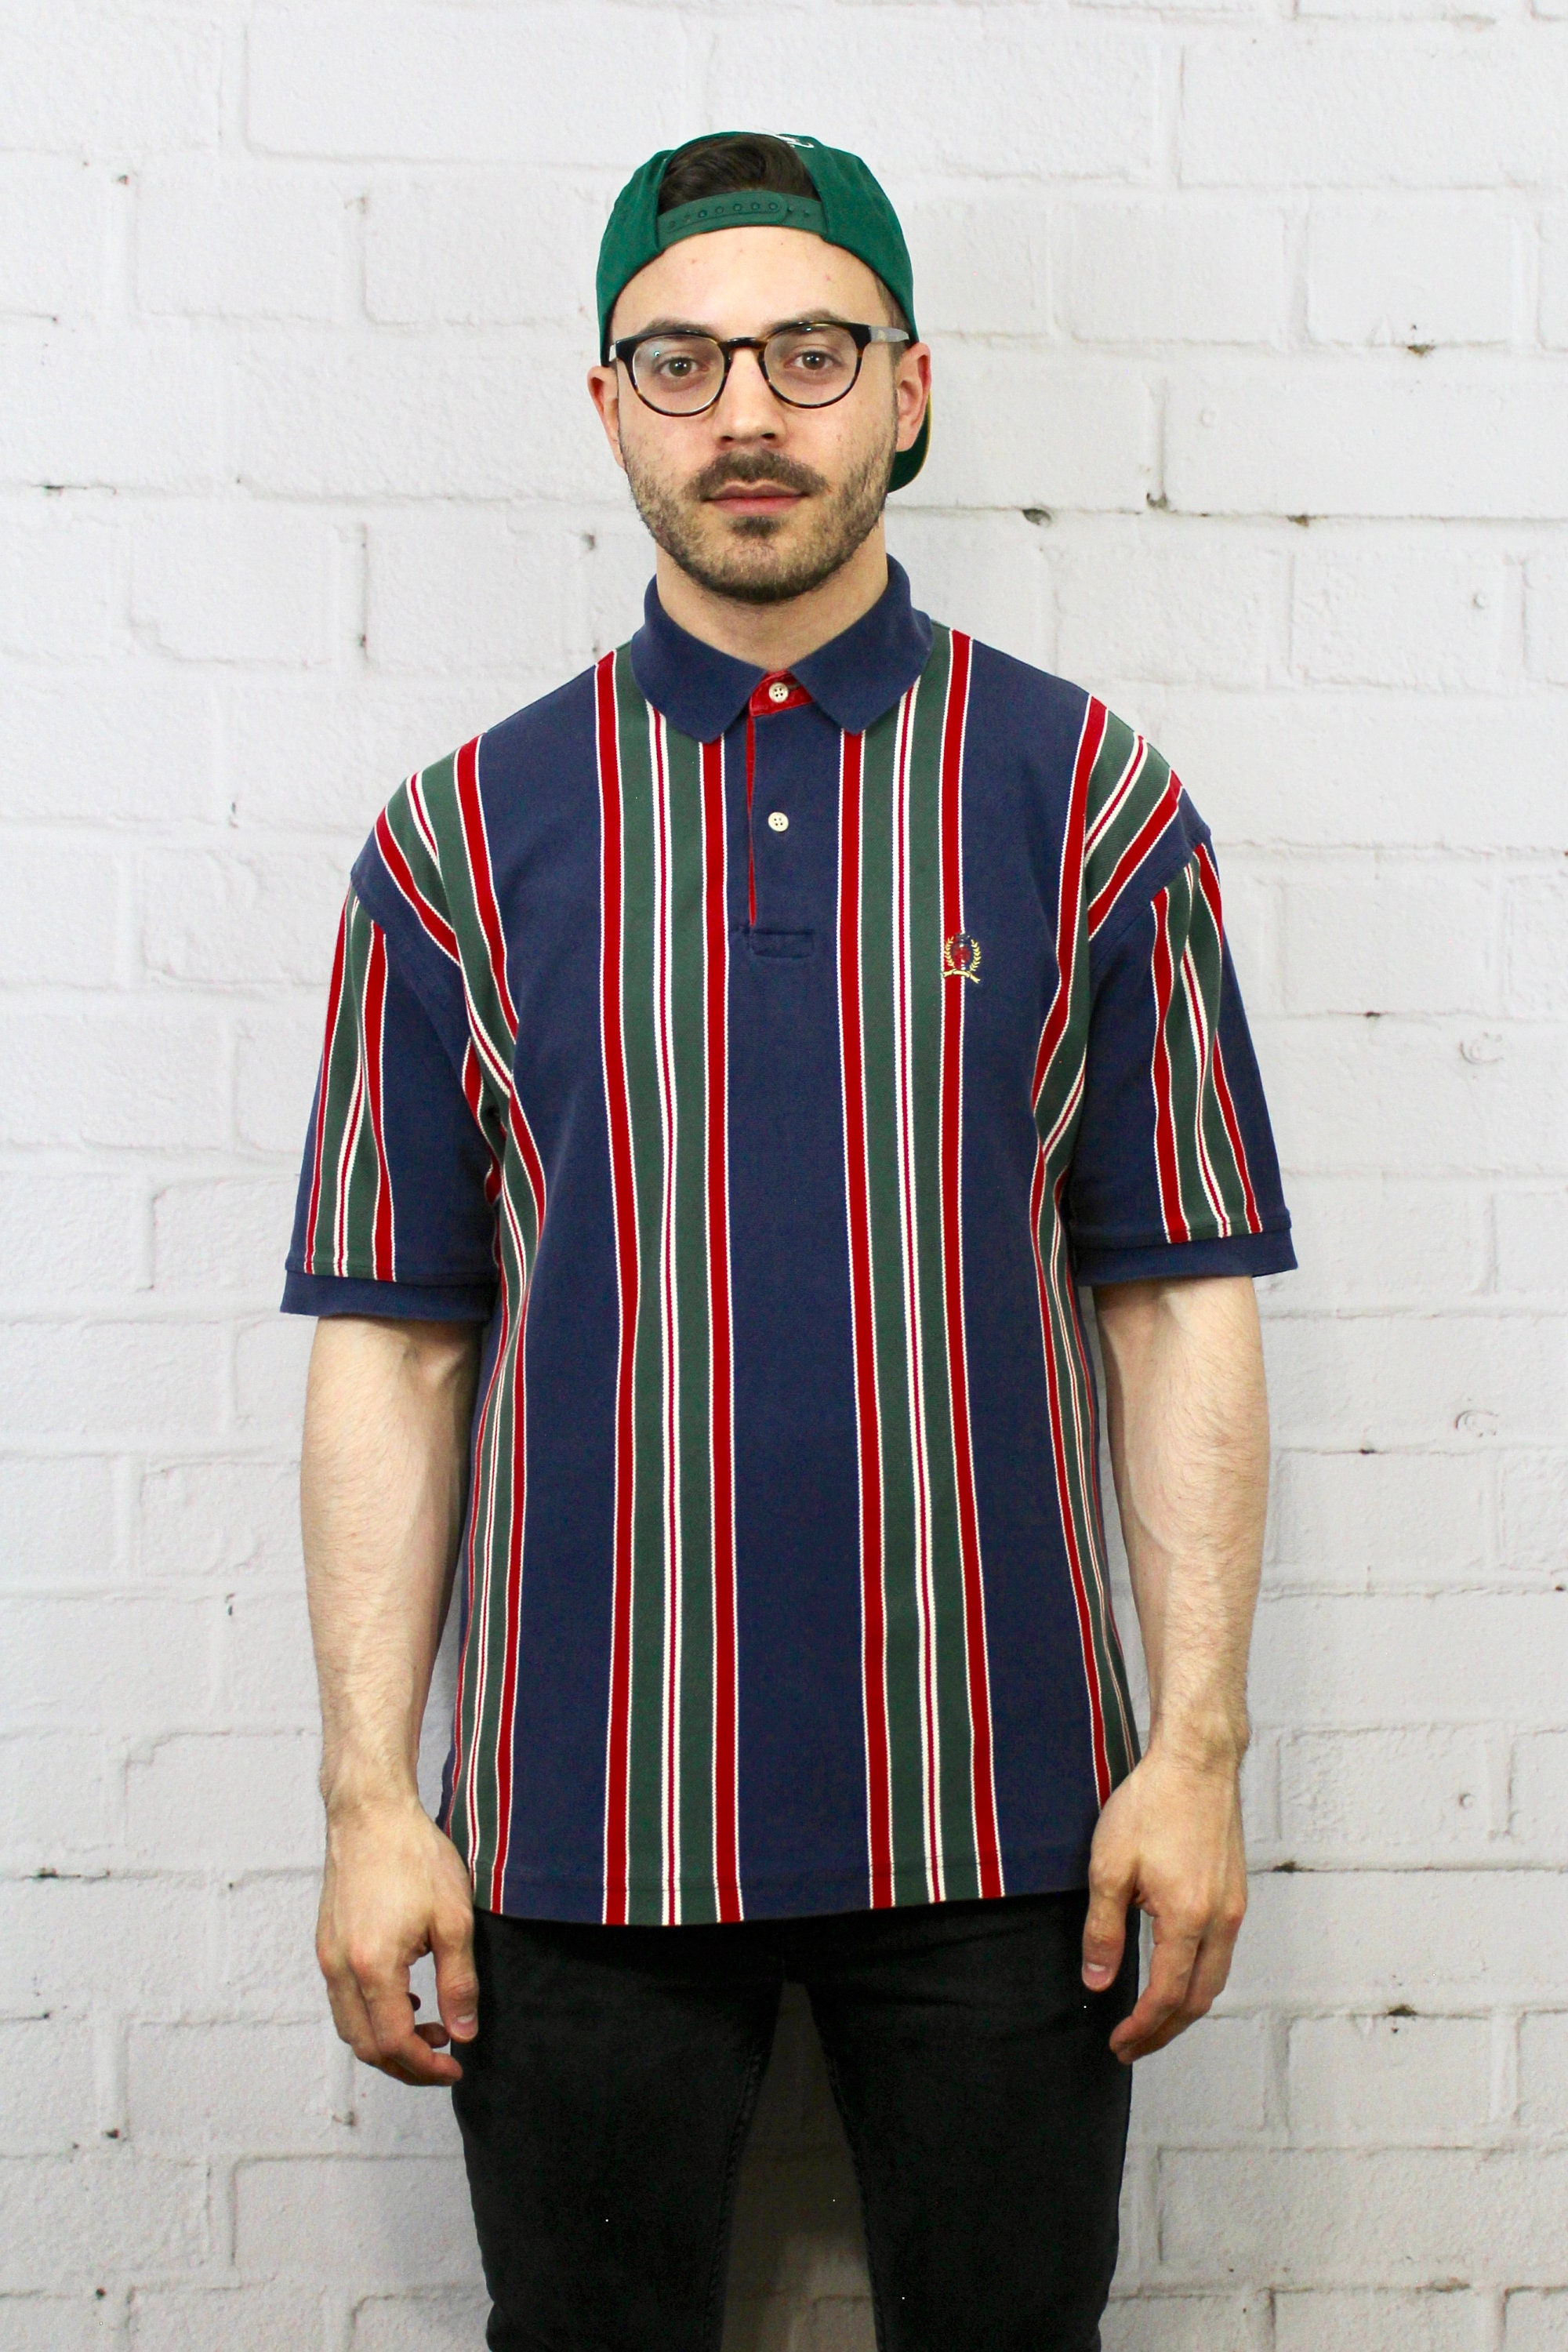 9f0b7117 90's Vintage Tommy Hilfiger Polo Shirt | Navy Blue Green Red Vertical  Stripe Color Block | Fresh Prince Style Shirt | Large